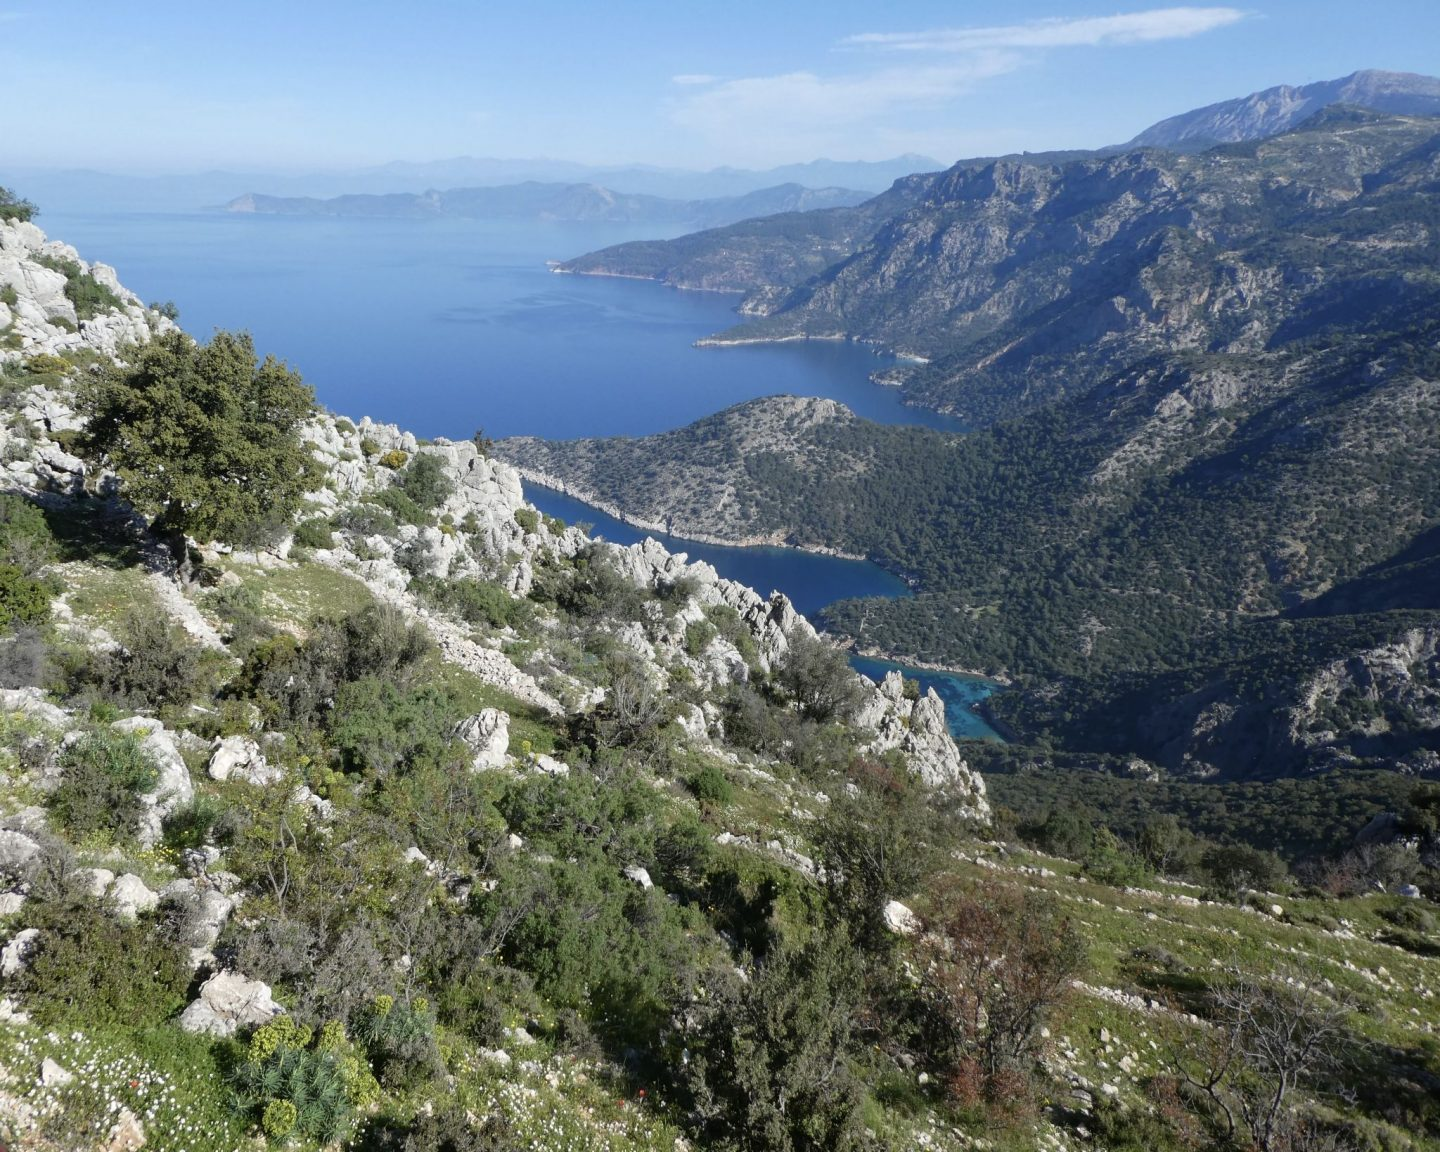 Lycian Way West, Turkey (2 April to 7 April 2018)